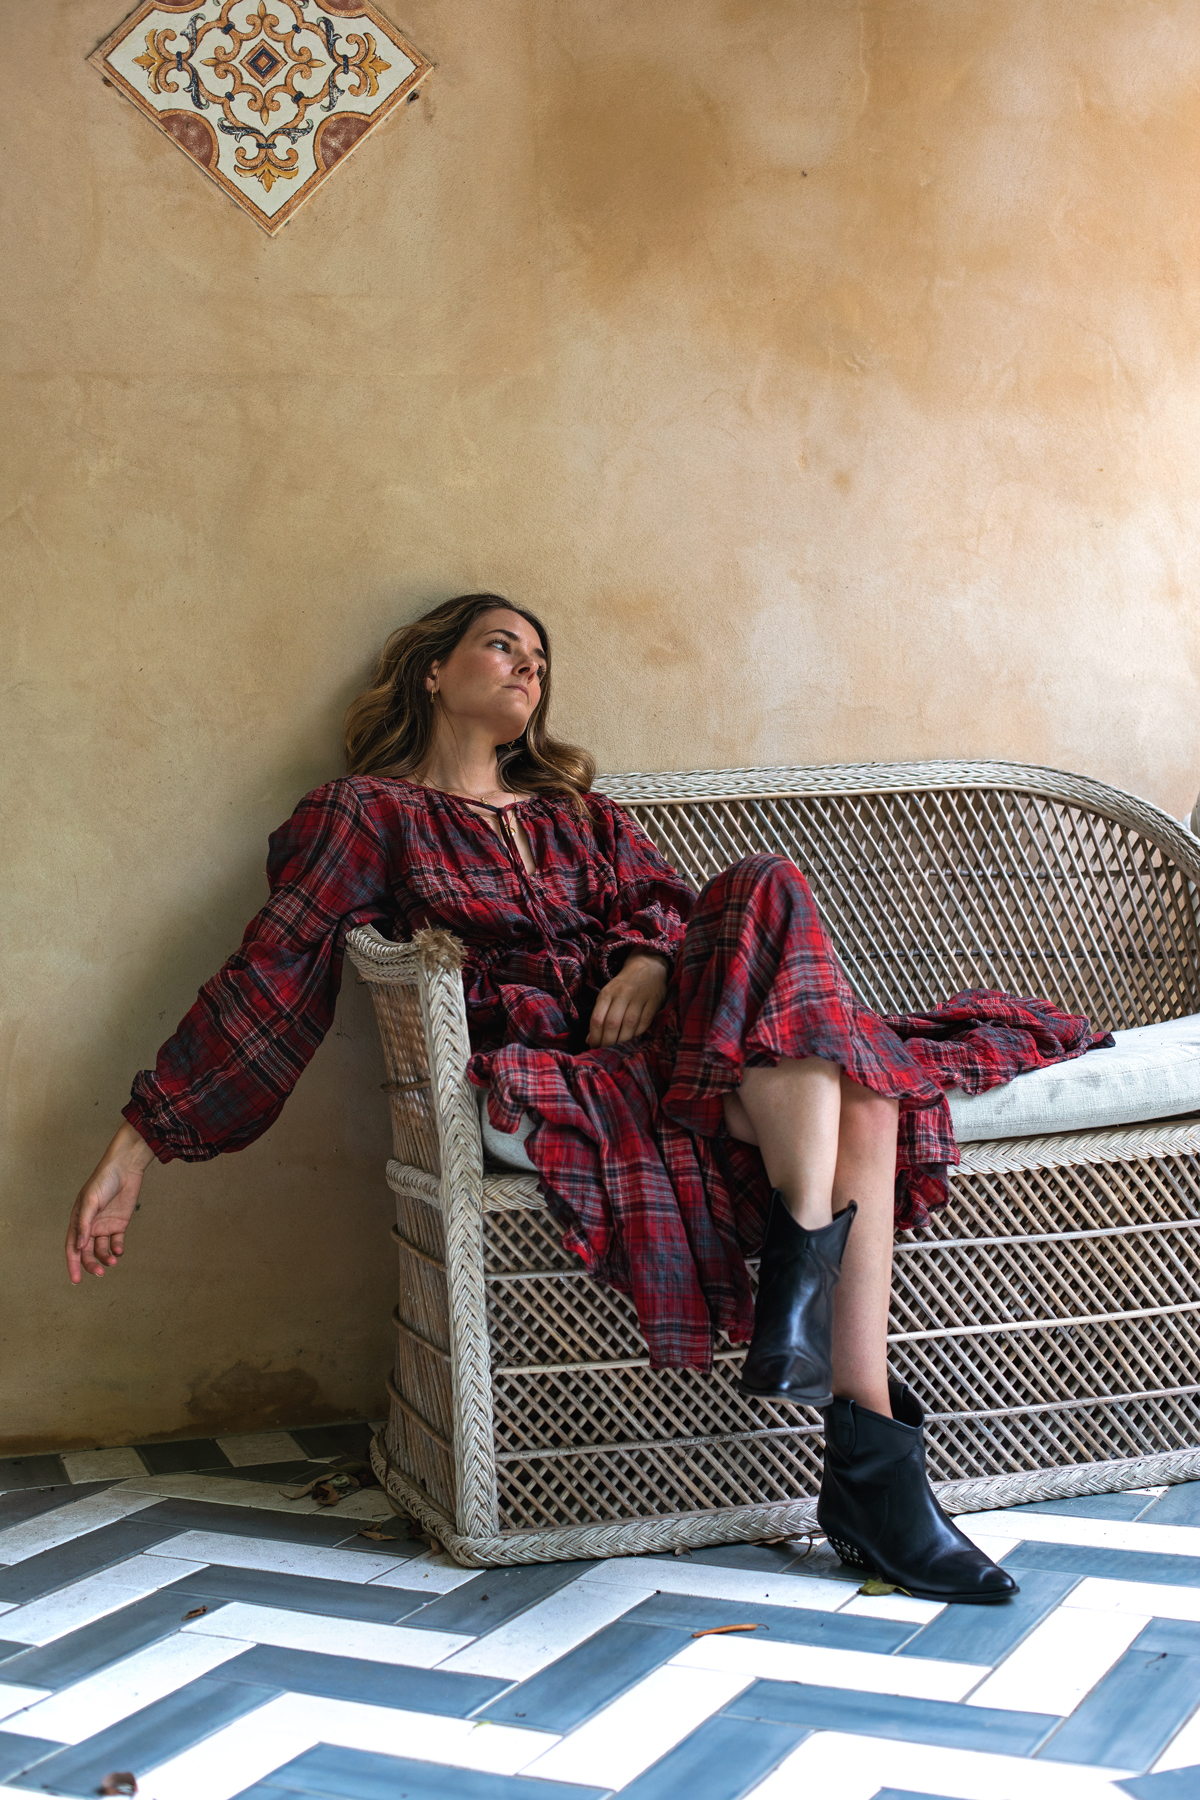 Bohemian Traders FIESTA MIDI DRESS IN BARBADOS CHERRY PLAID worn by Inspiring Wit fashion blogger Jenelle